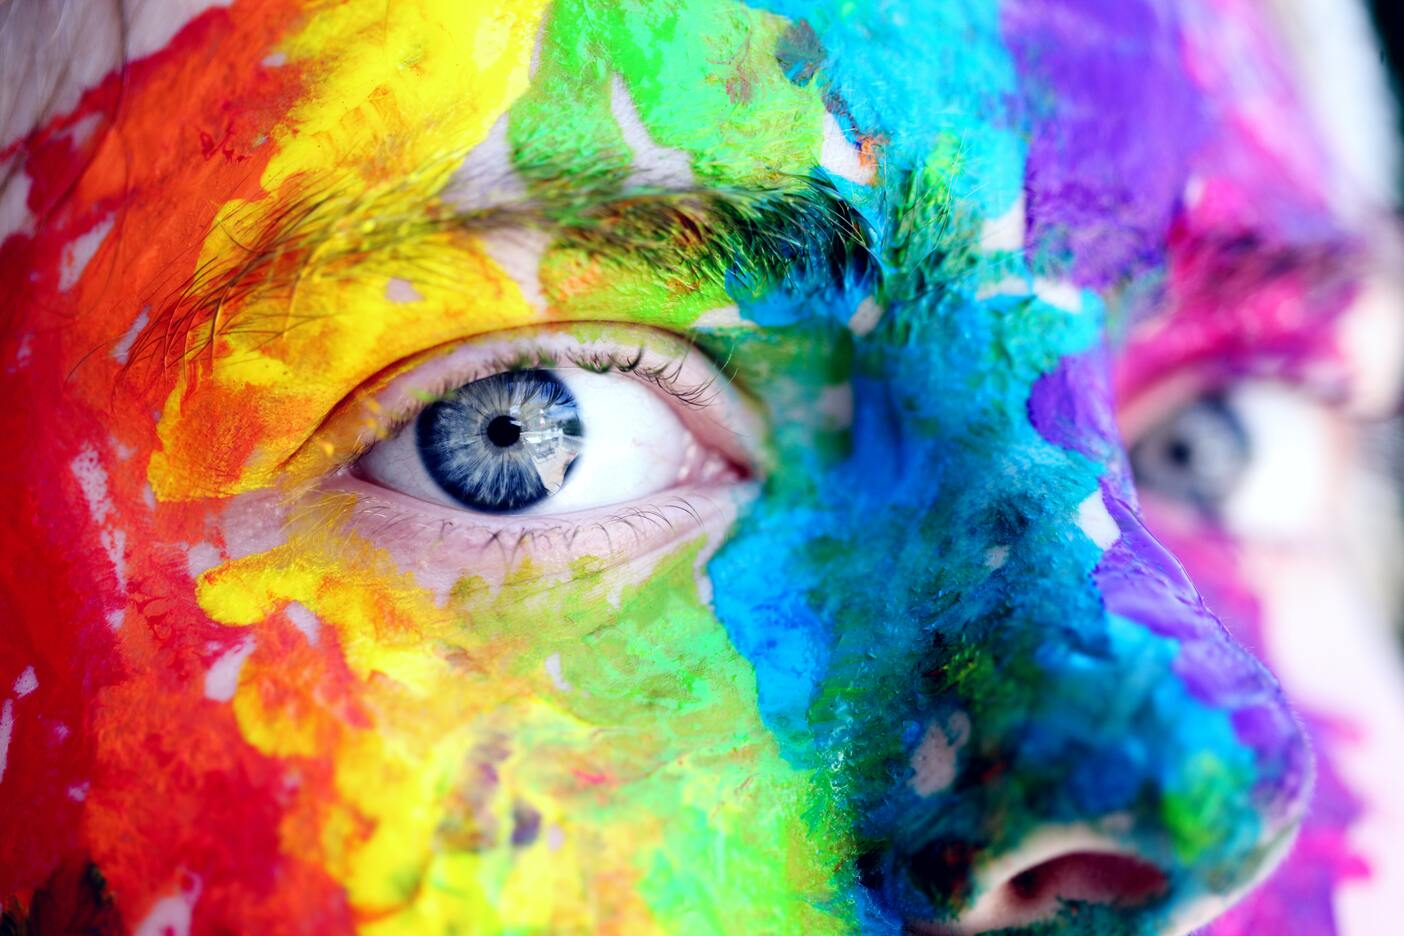 A creative with blue eyes stares ahead with colorful paint covering her face.